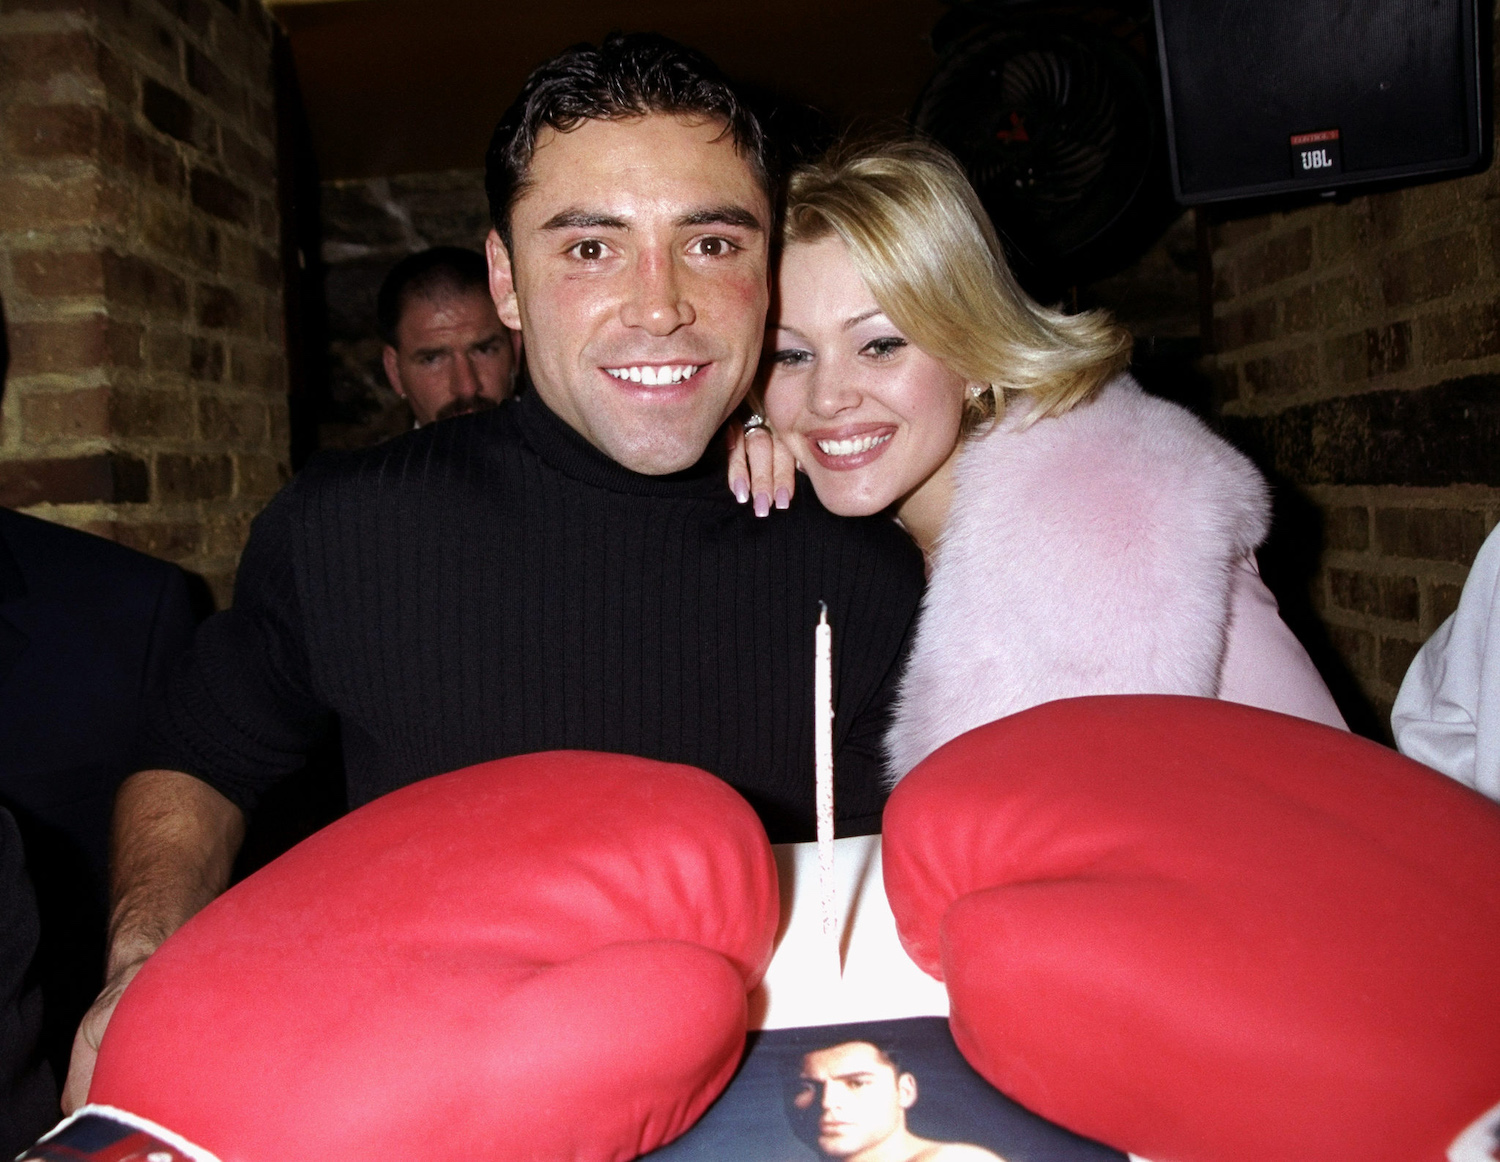 Oscar De La Hoya's Dark Side Included Cross-Dressing at Cocaine-Fueled Sex Parties